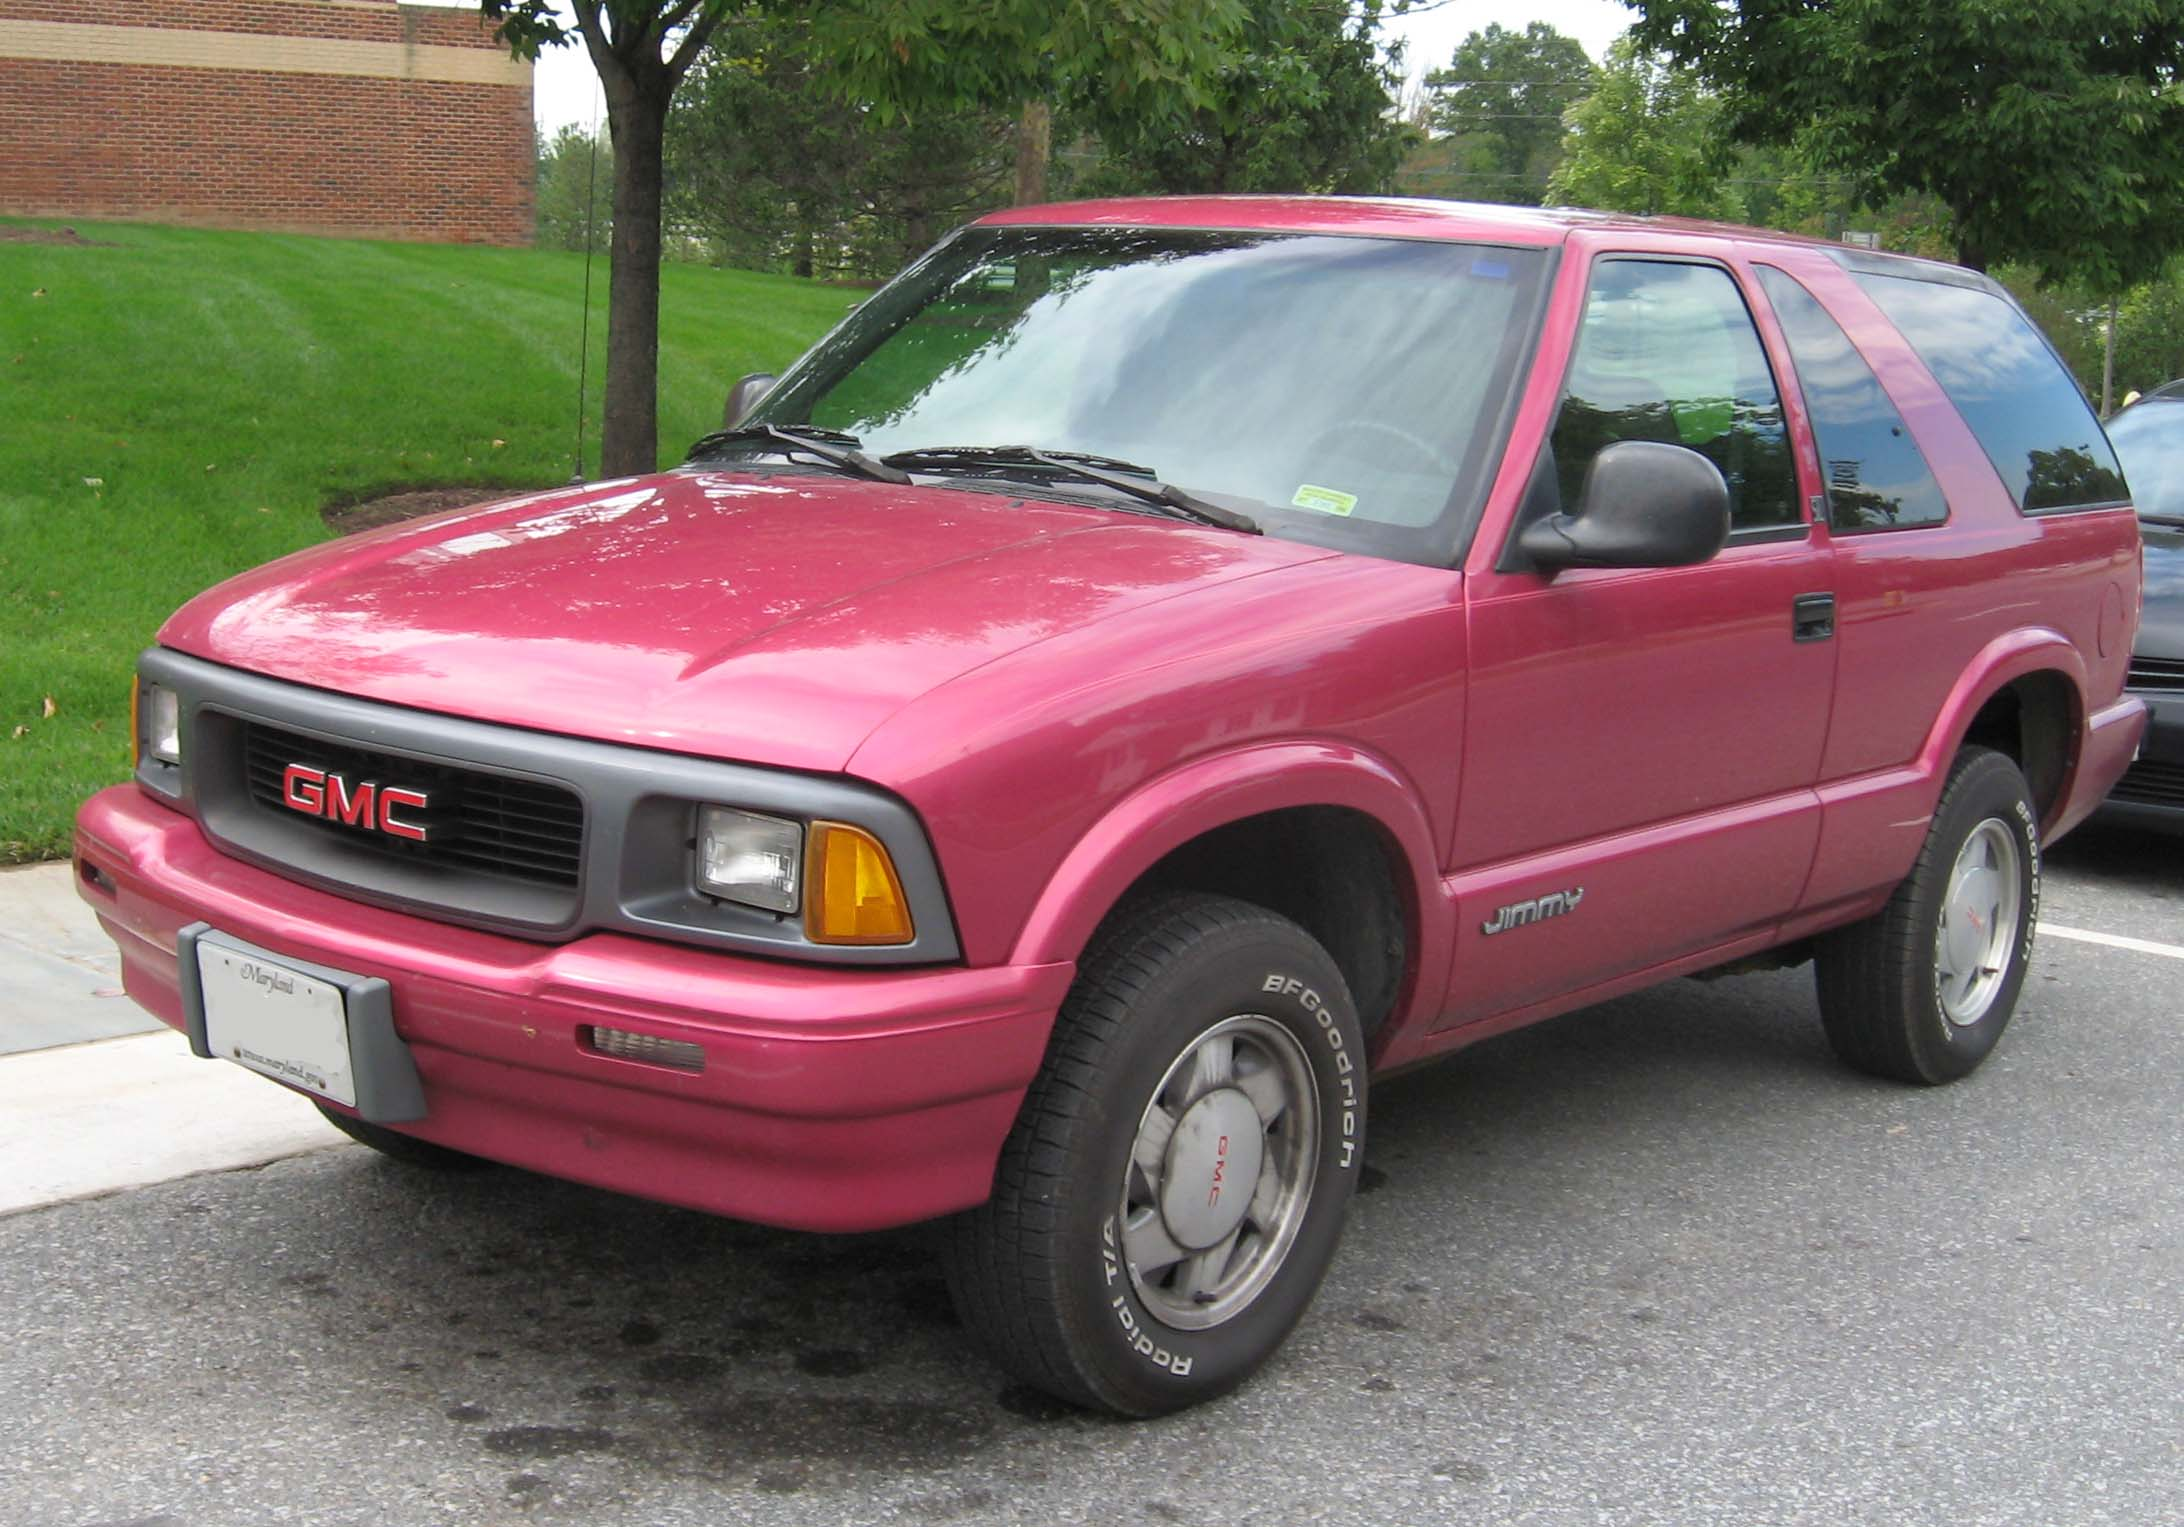 Pictures of gmc jimmy #13